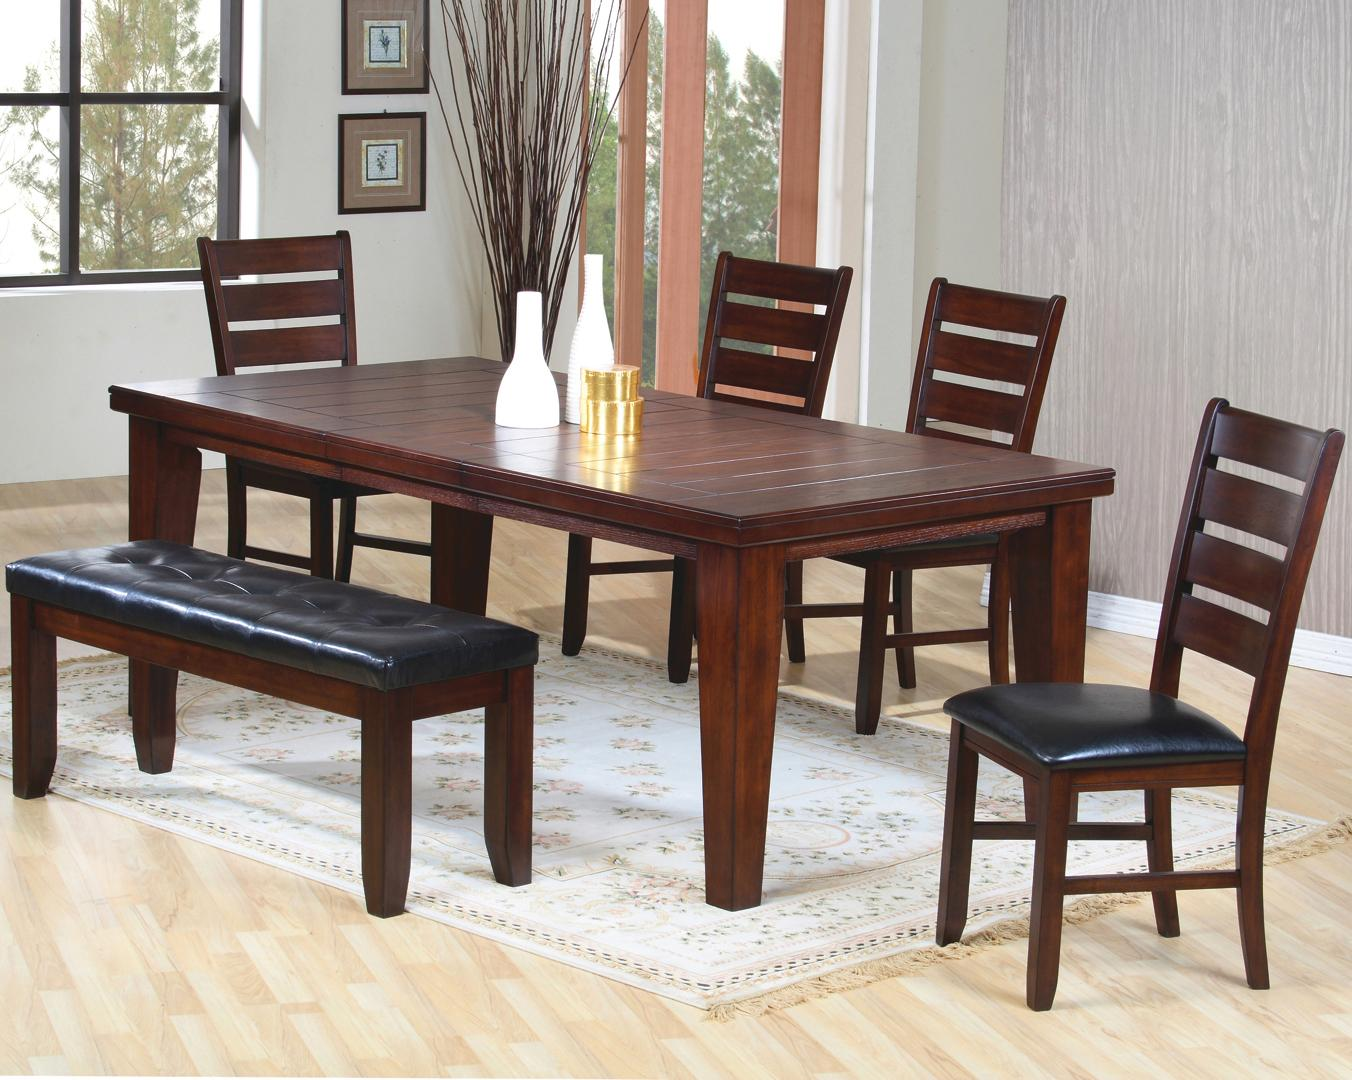 Coaster Imperial 6 Piece Dining Set   Item Number: 101881+4x2+3